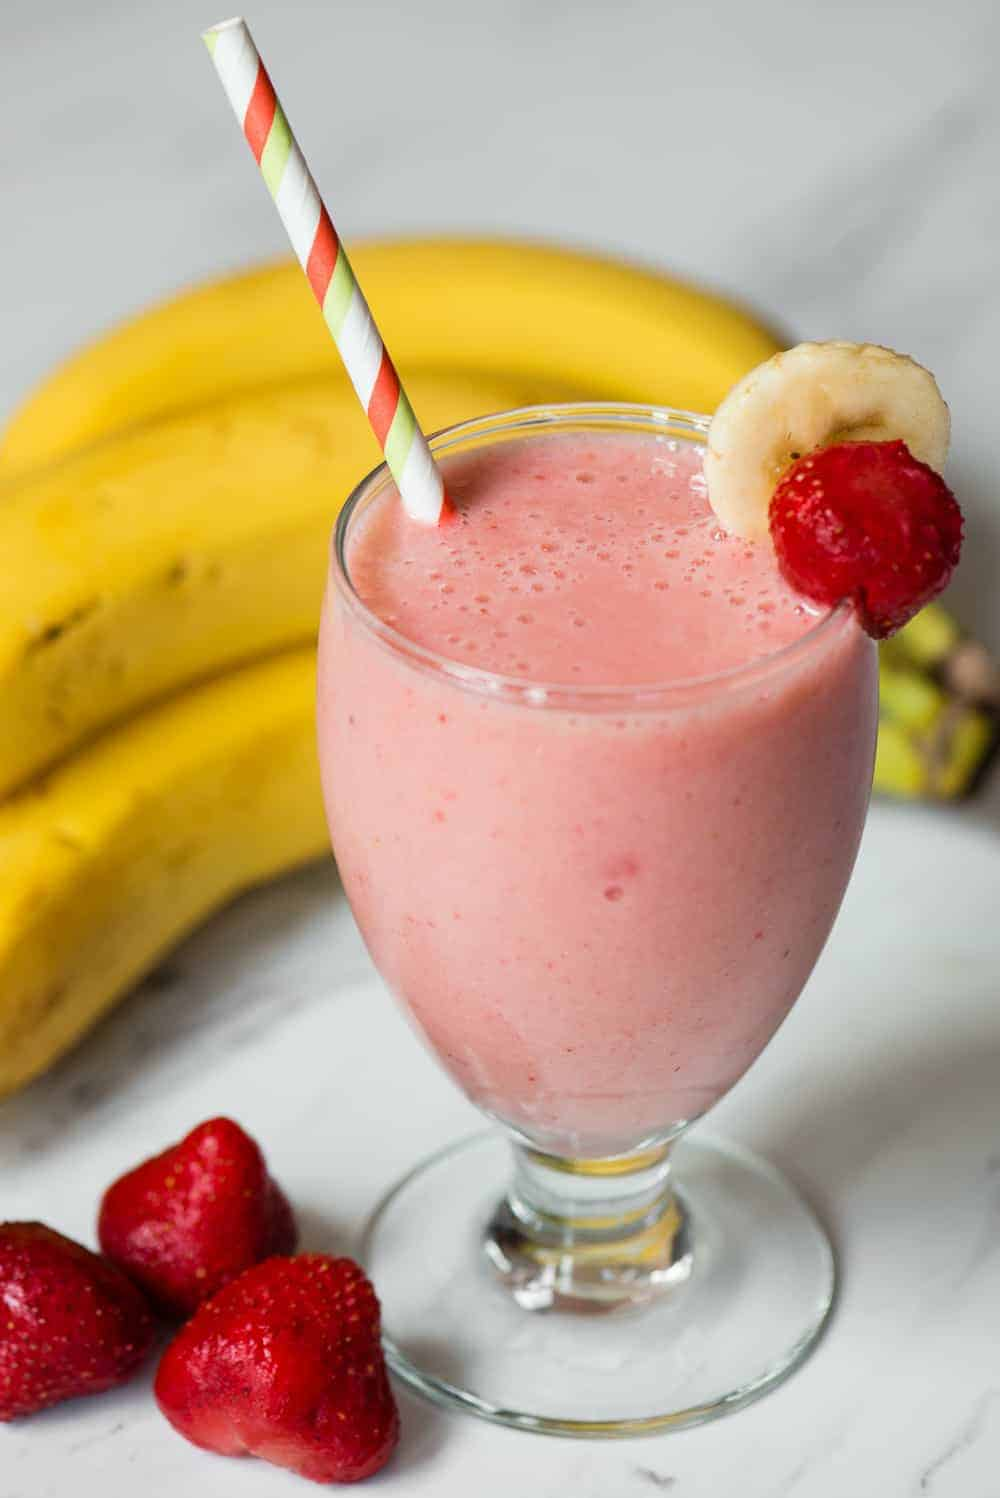 strawberry Banana Smoothie in glass